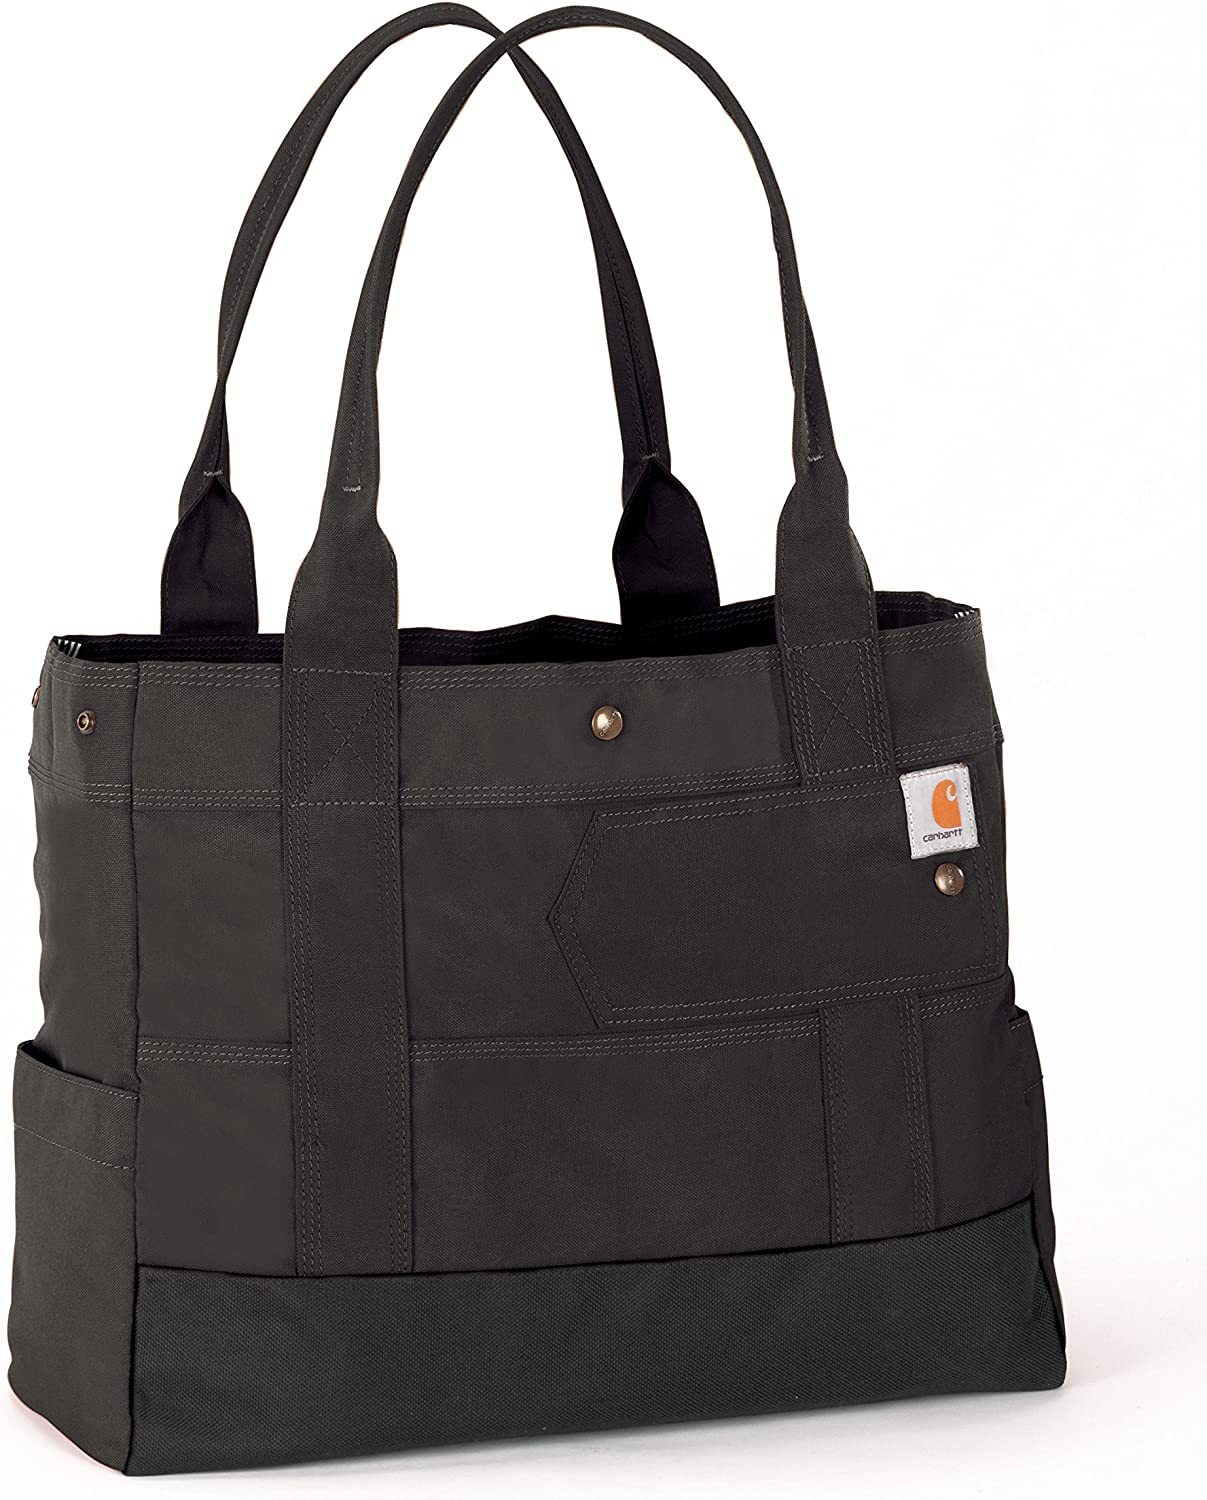 Carhartt Legacy Women's Tote East/West, Black